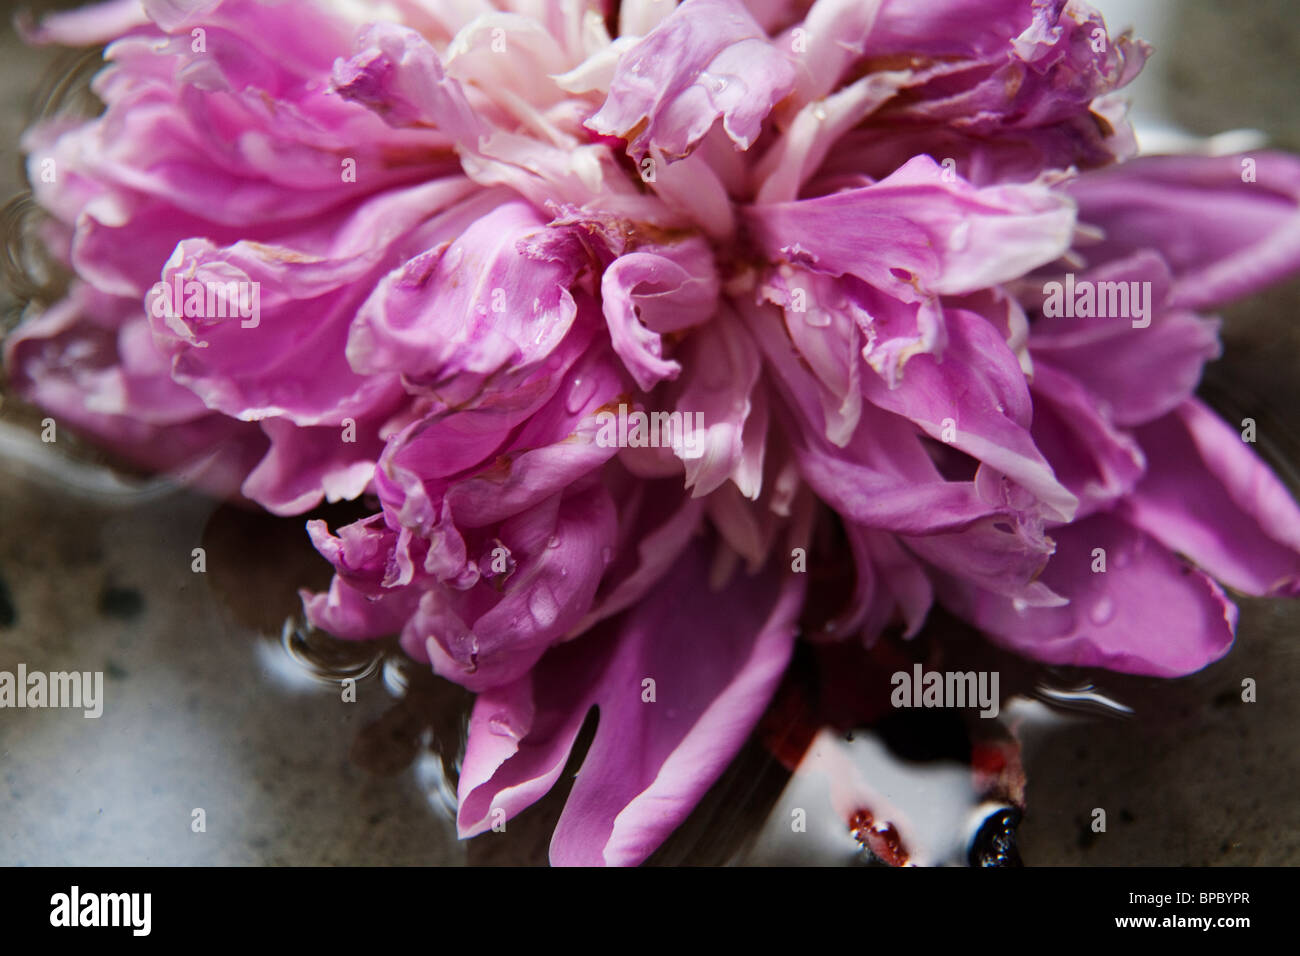 Closeup of petals of a pink peony in water Stock Photo